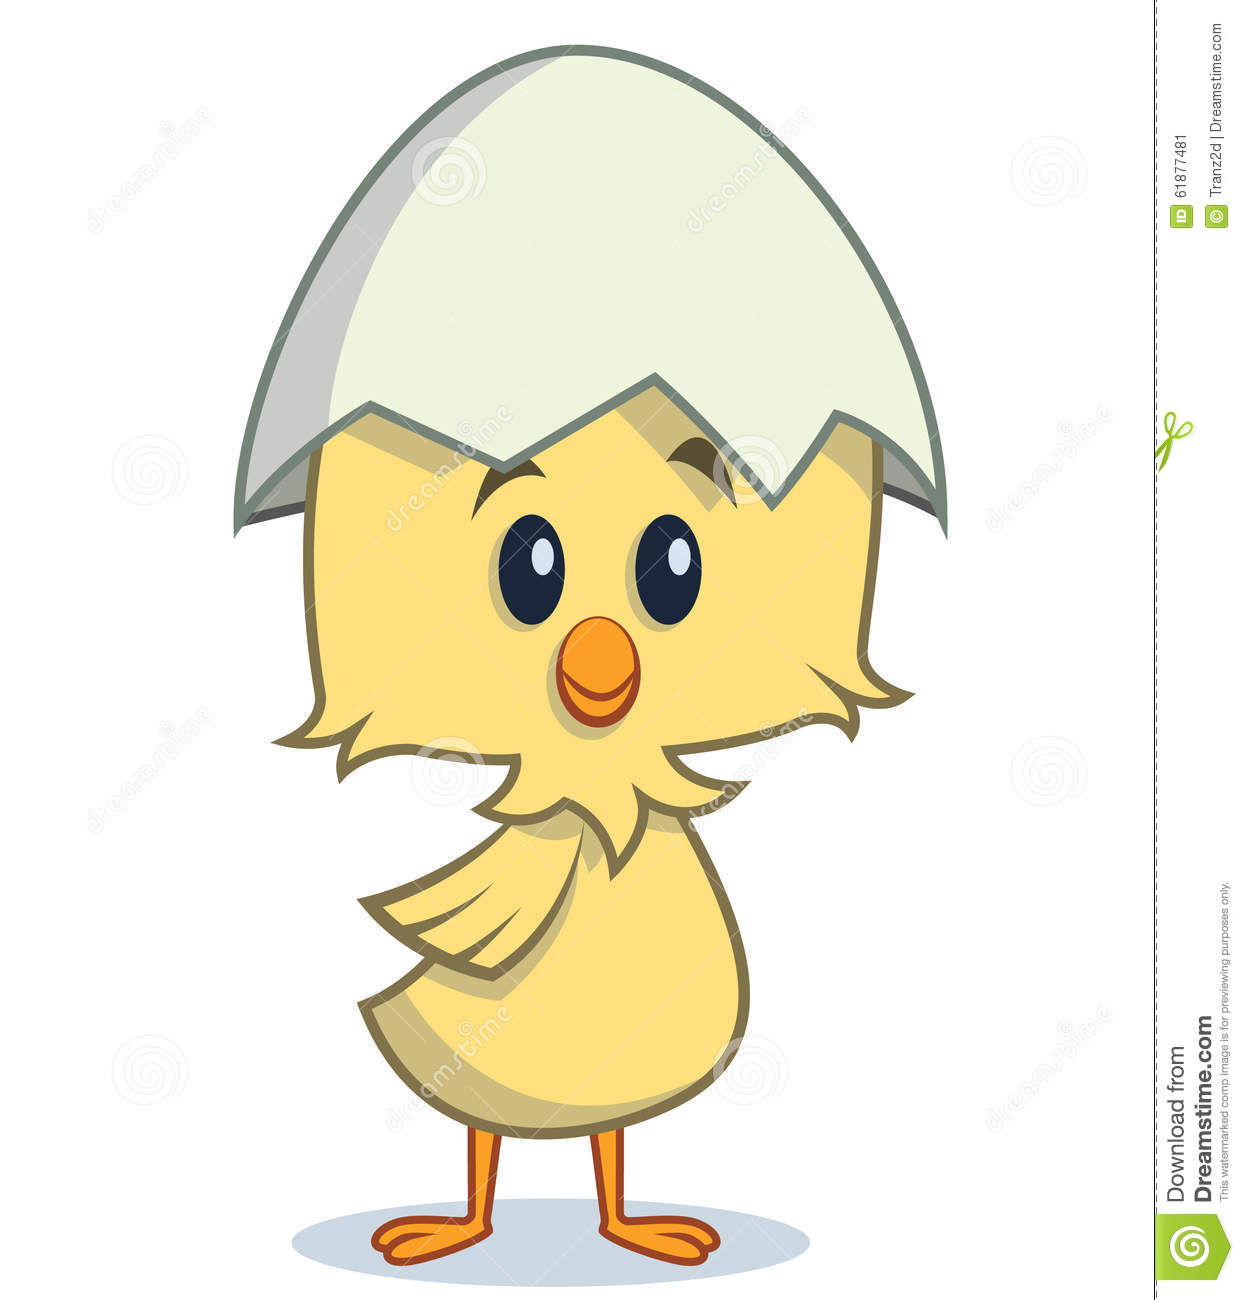 clipart chicken and egg - photo #29